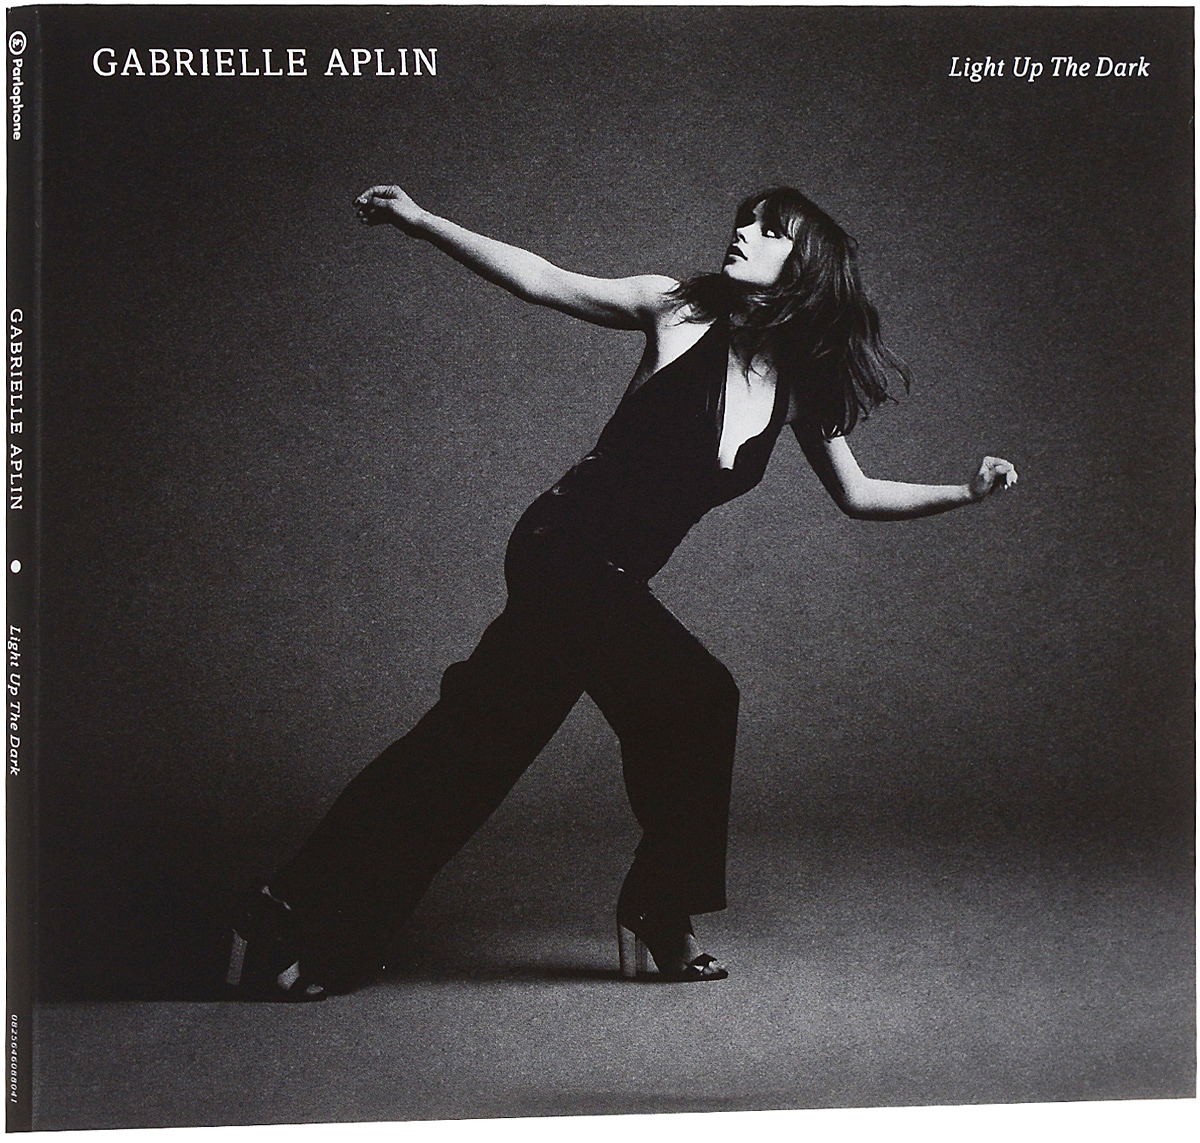 Габриель Эплин Gabrielle Aplin. Light Up The Dark. Deluxe Edition (2 CD) мобильный телефон philips xenium e560 black